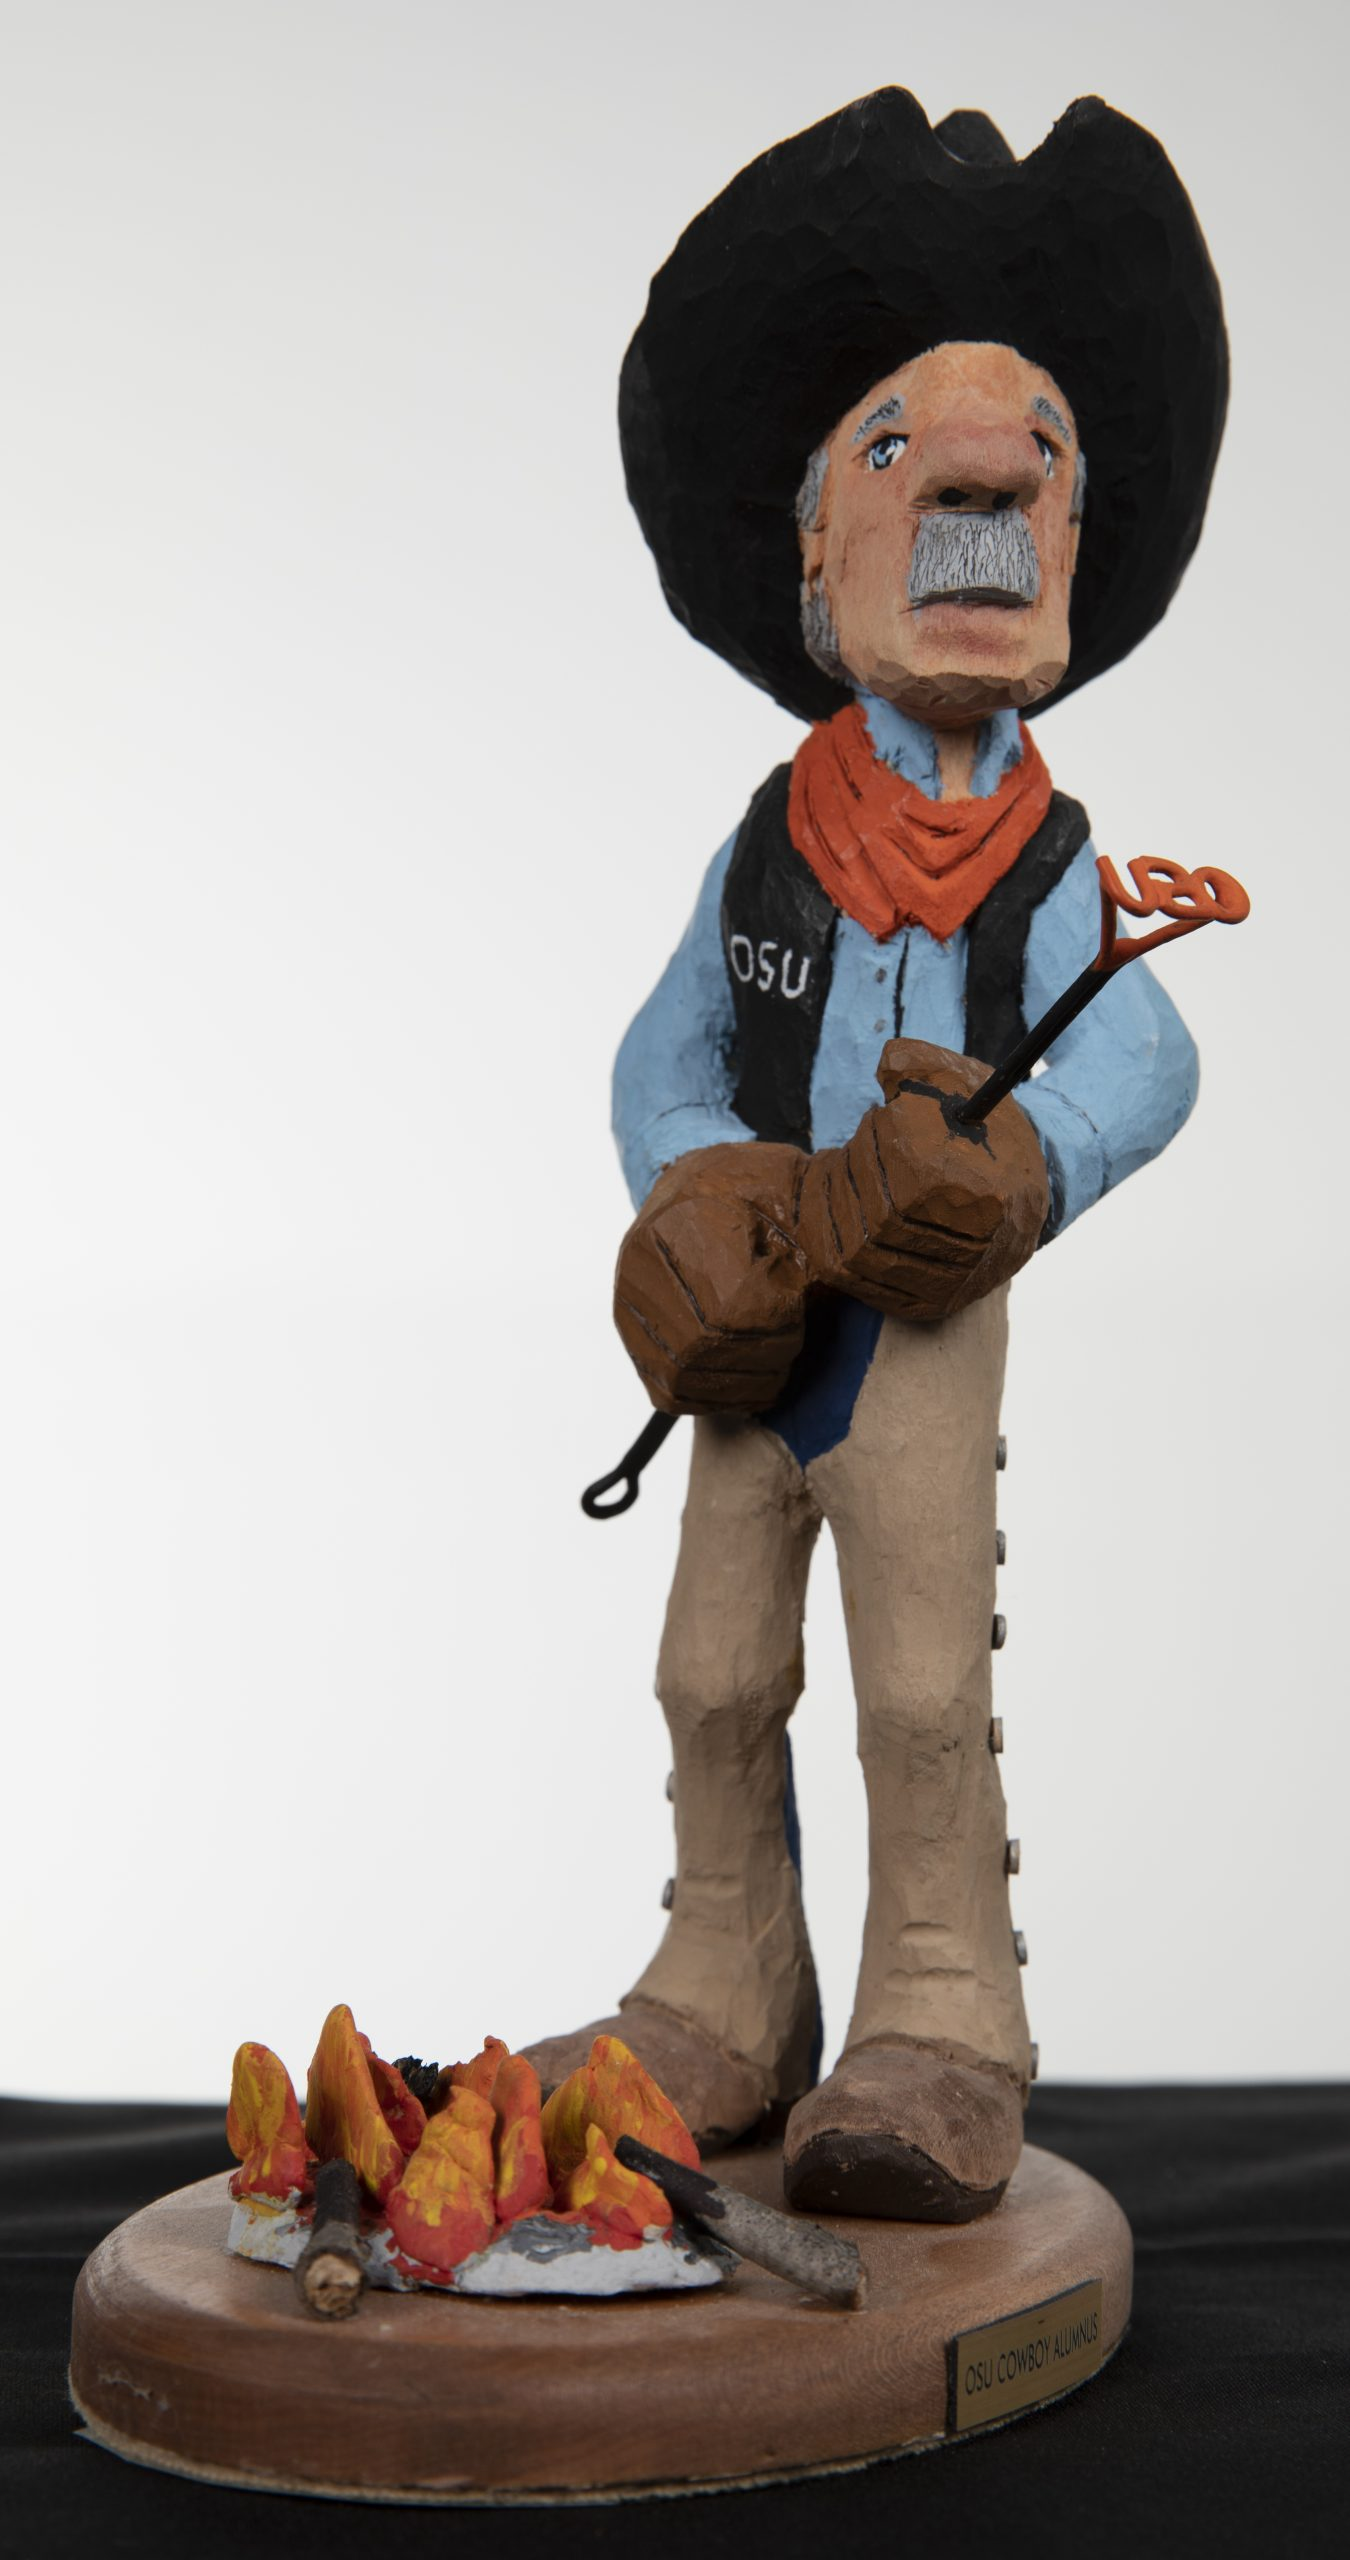 Scuplture of man dressed as cowboy standing over an open fire and holding a cattle brand